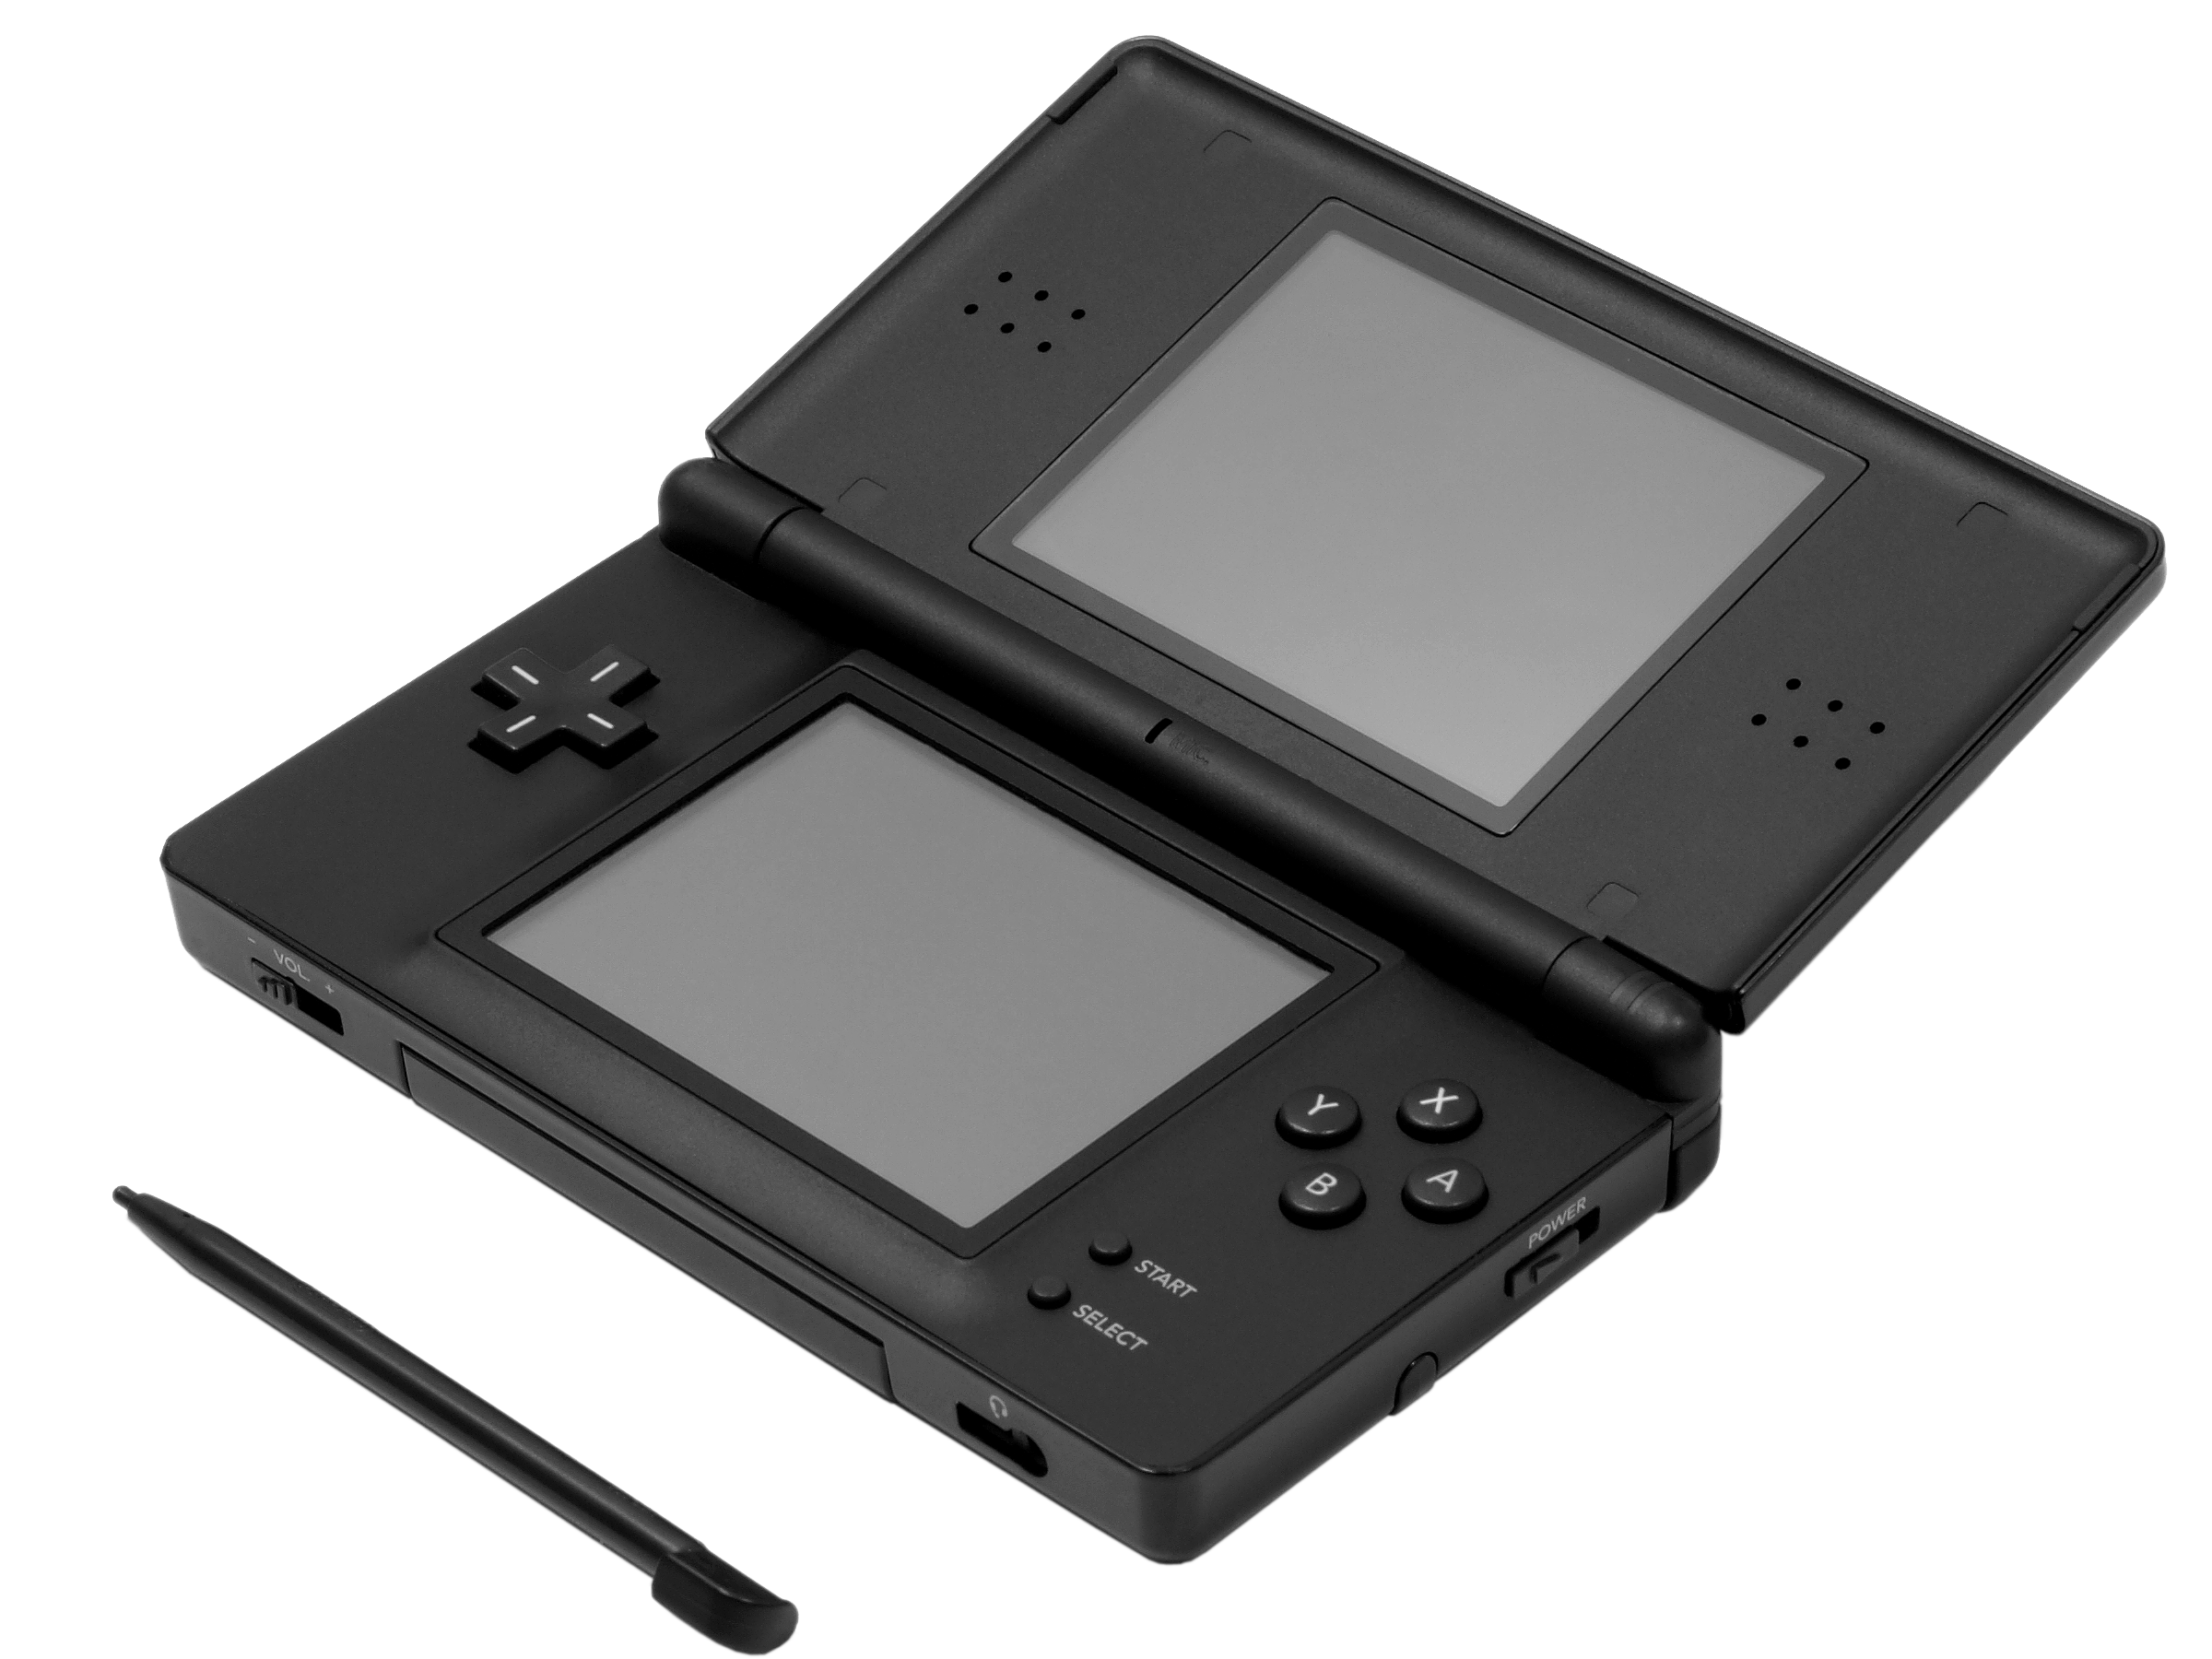 Description Nintendo-DS-Lite-w-stylus.png